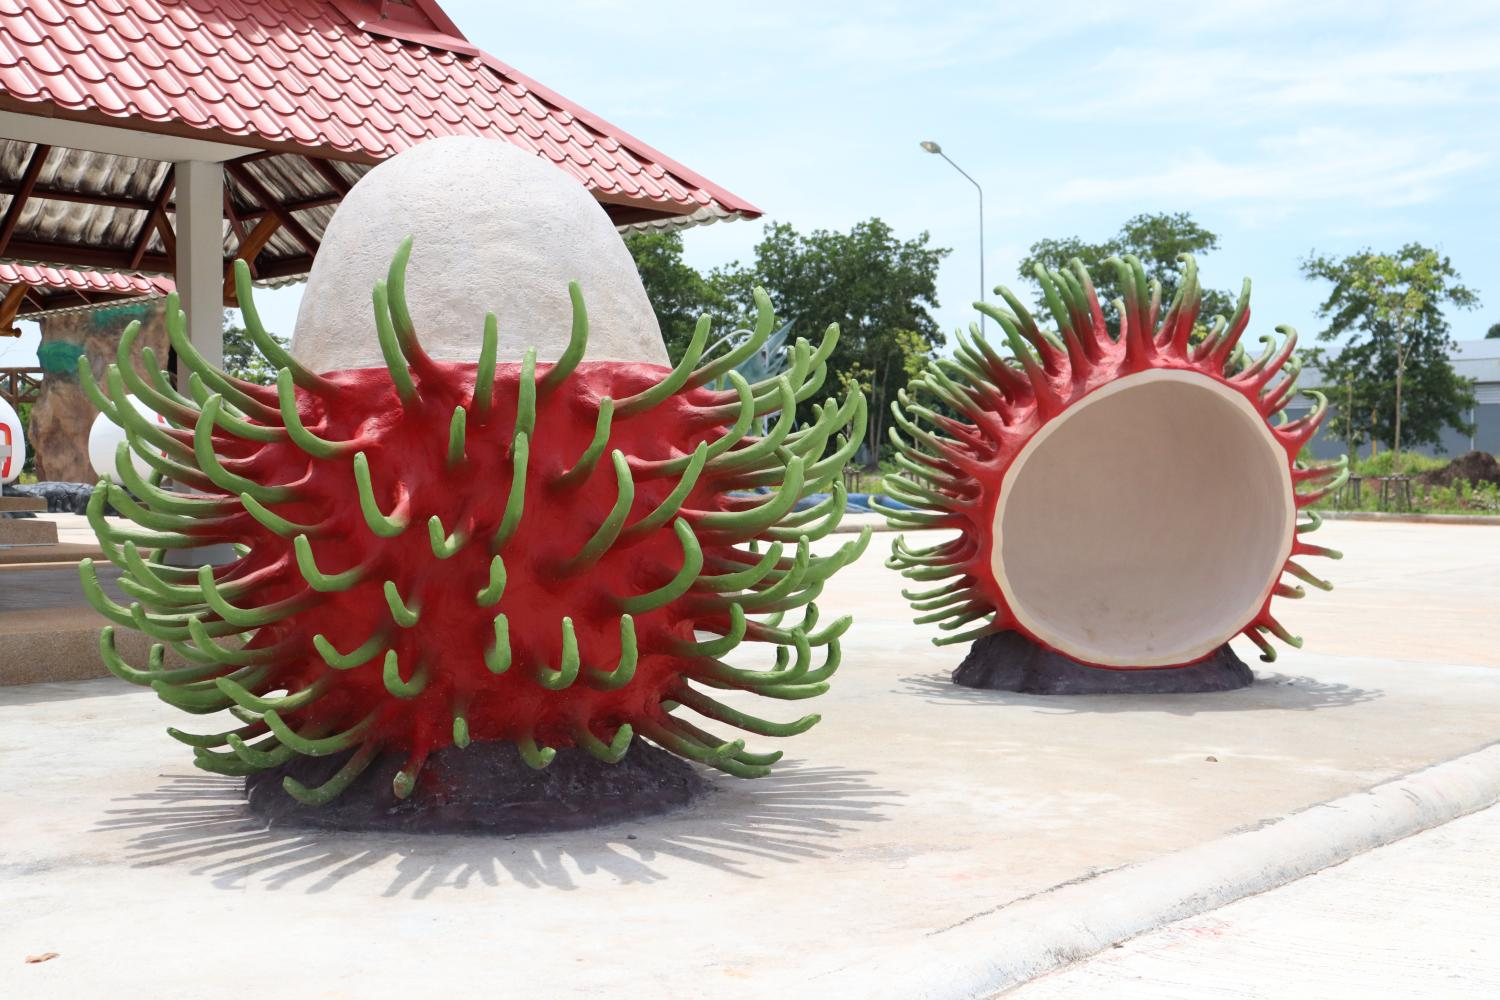 Replicas of famous products and souvenirs of Surat Thani are on display at the newly-opened 'Surat Gateway', a vehicle rest area by the roadside on Highway 41. The sculptures include rambutans, famous in Ban Na San district; oysters and cockles, famous in Kanchanadit district; and salted eggs of Chaiya district. (Photos by Department of Highways)